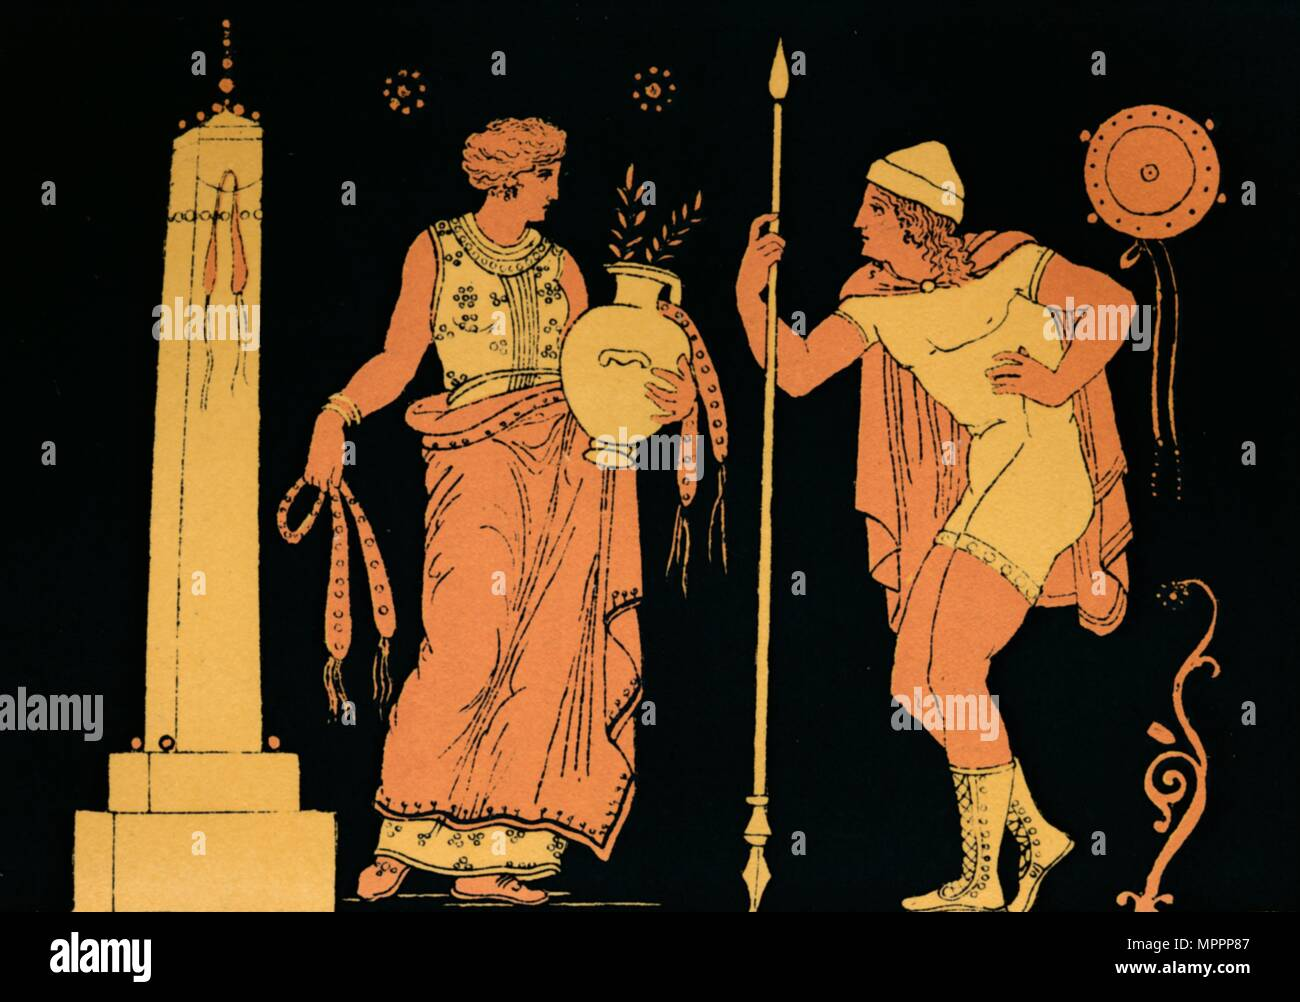 'Electra and Orestes', 1880. Artist: Antique. - Stock Image